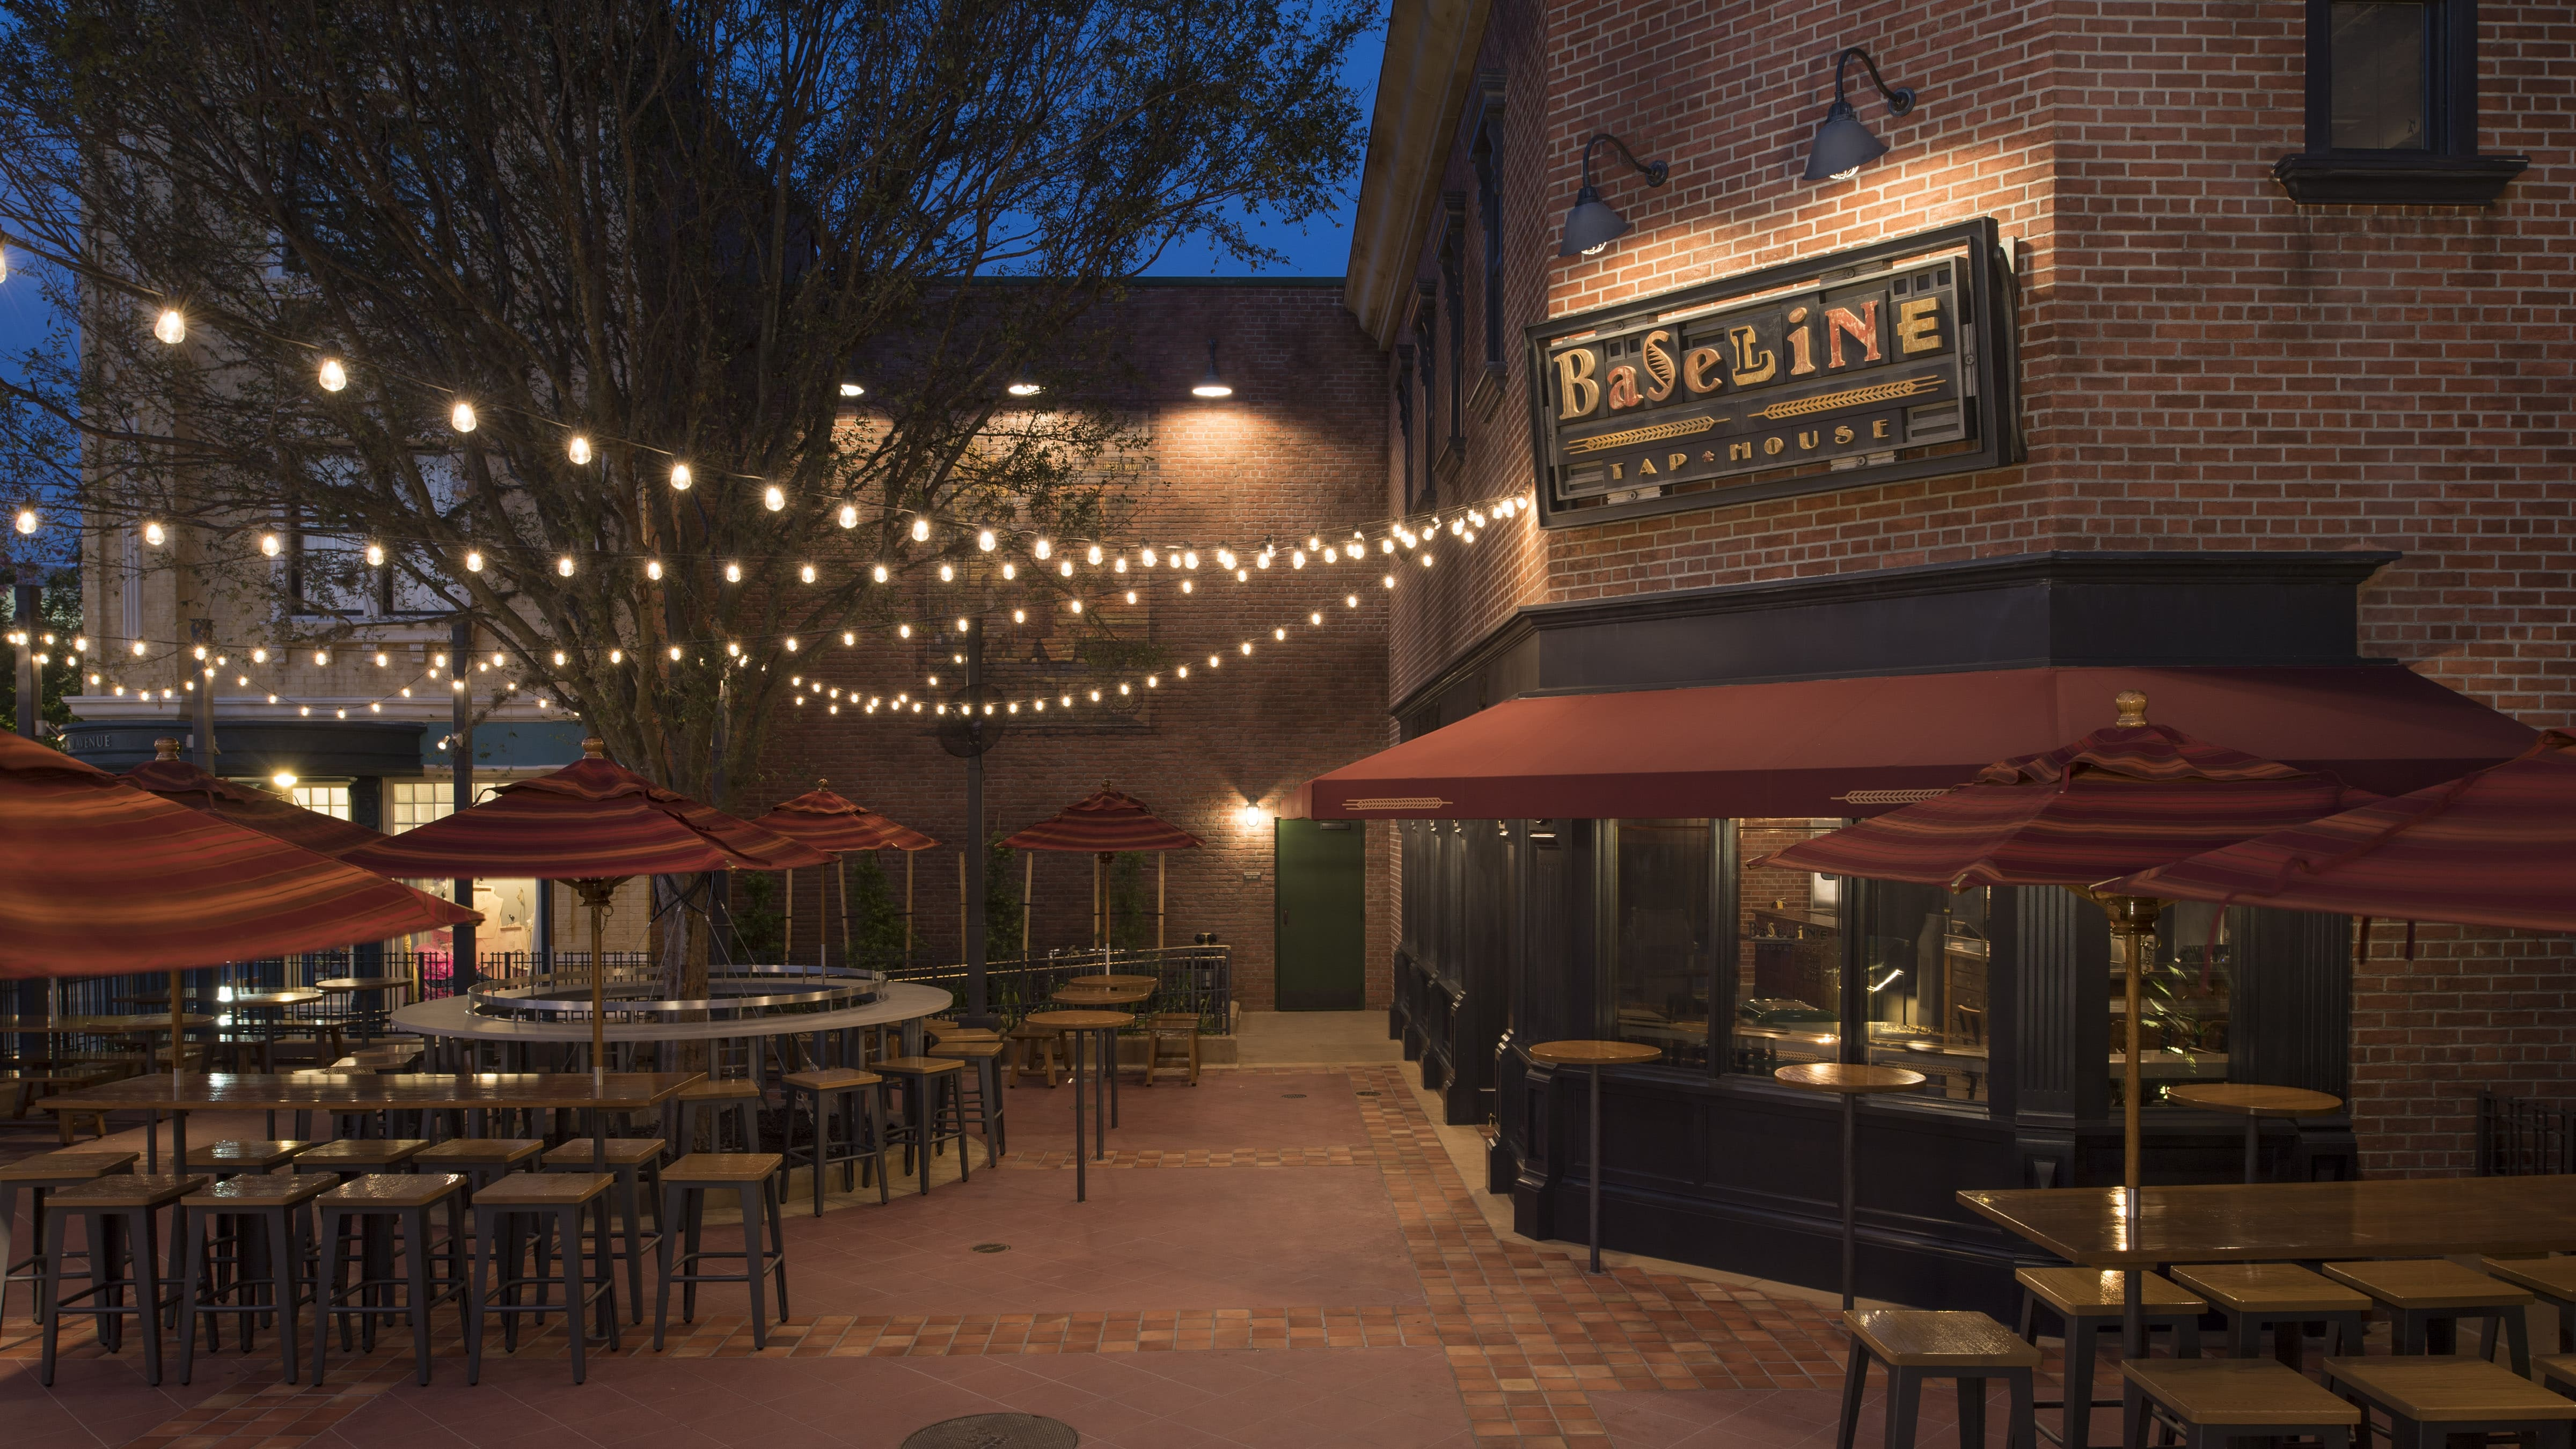 BaseLine Tap House Opens at Disneys Hollywood Studios Travel to